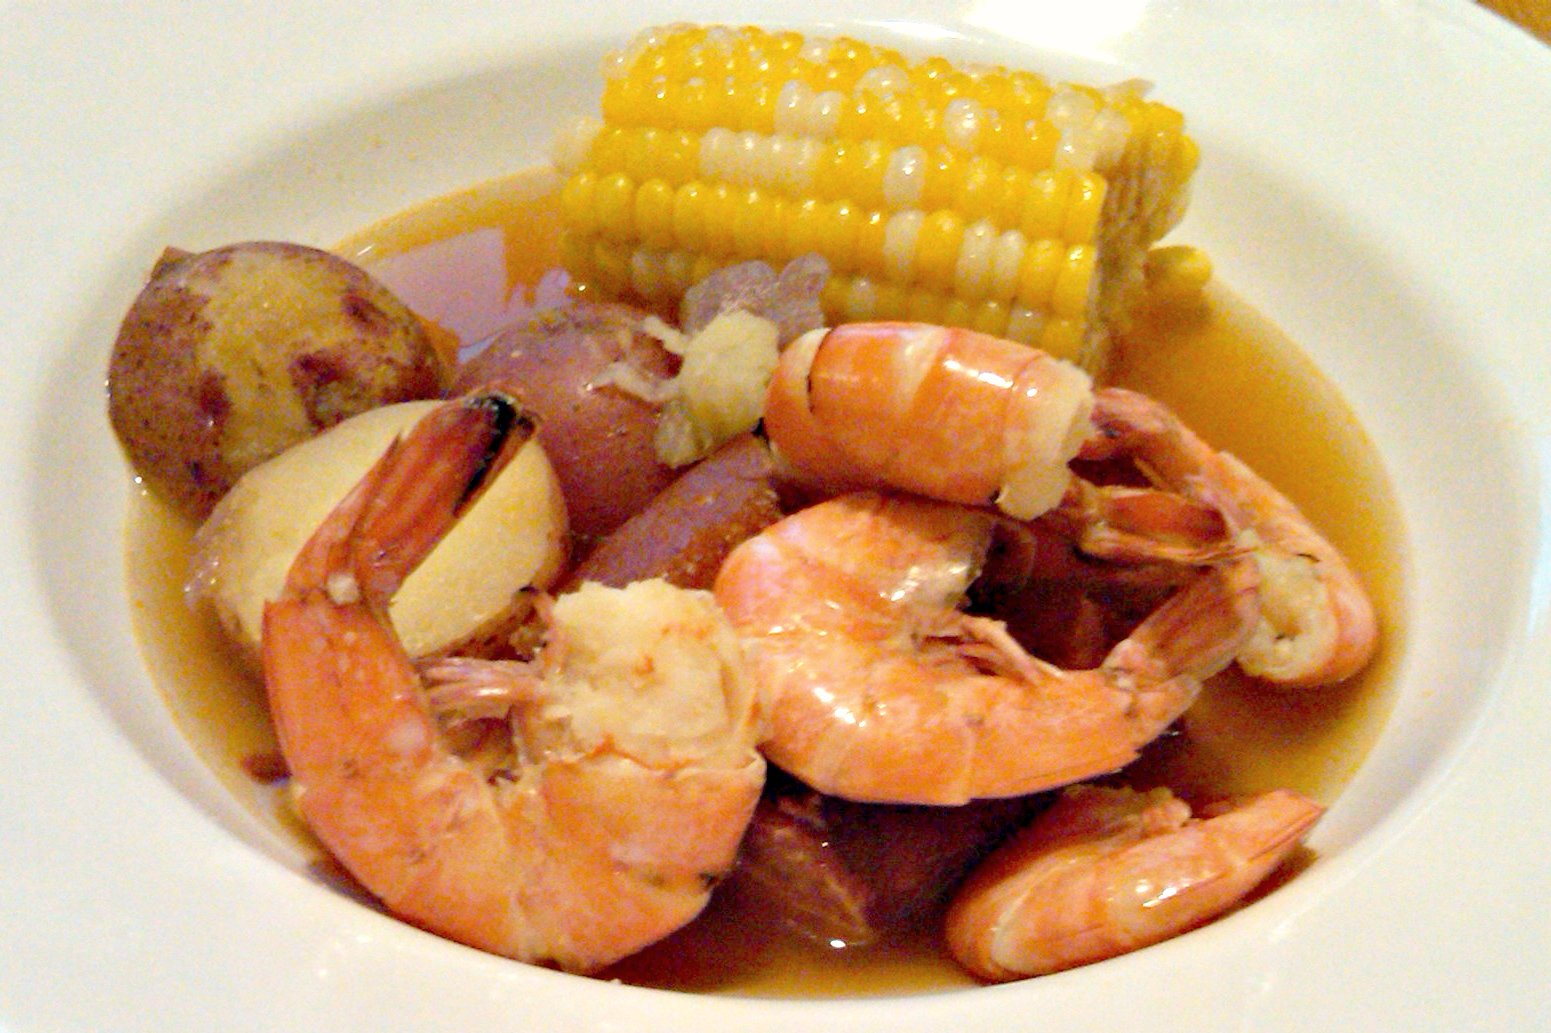 Biscuits 'N' Bacon: Frogmore Stew